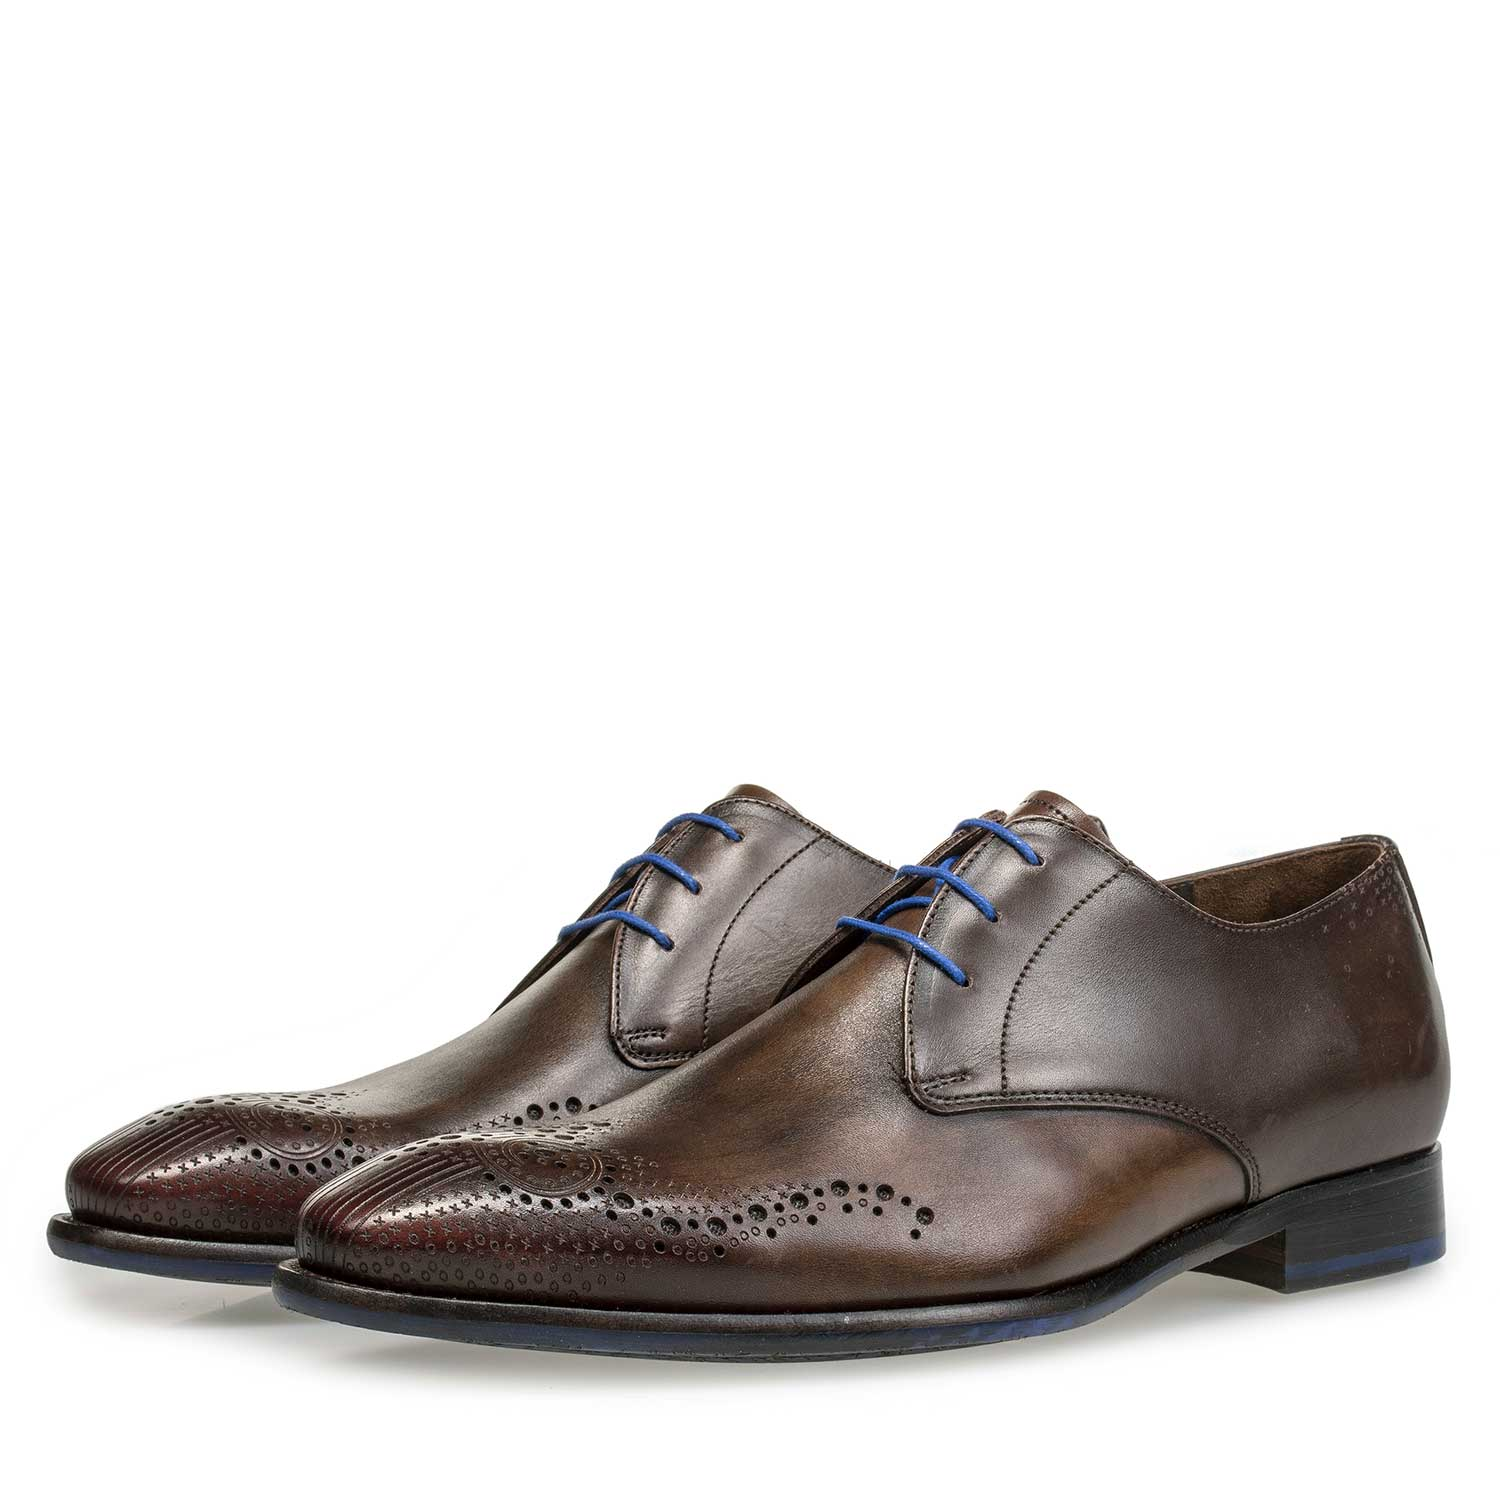 18075/02 - Brown brogue calf's leather lace shoe